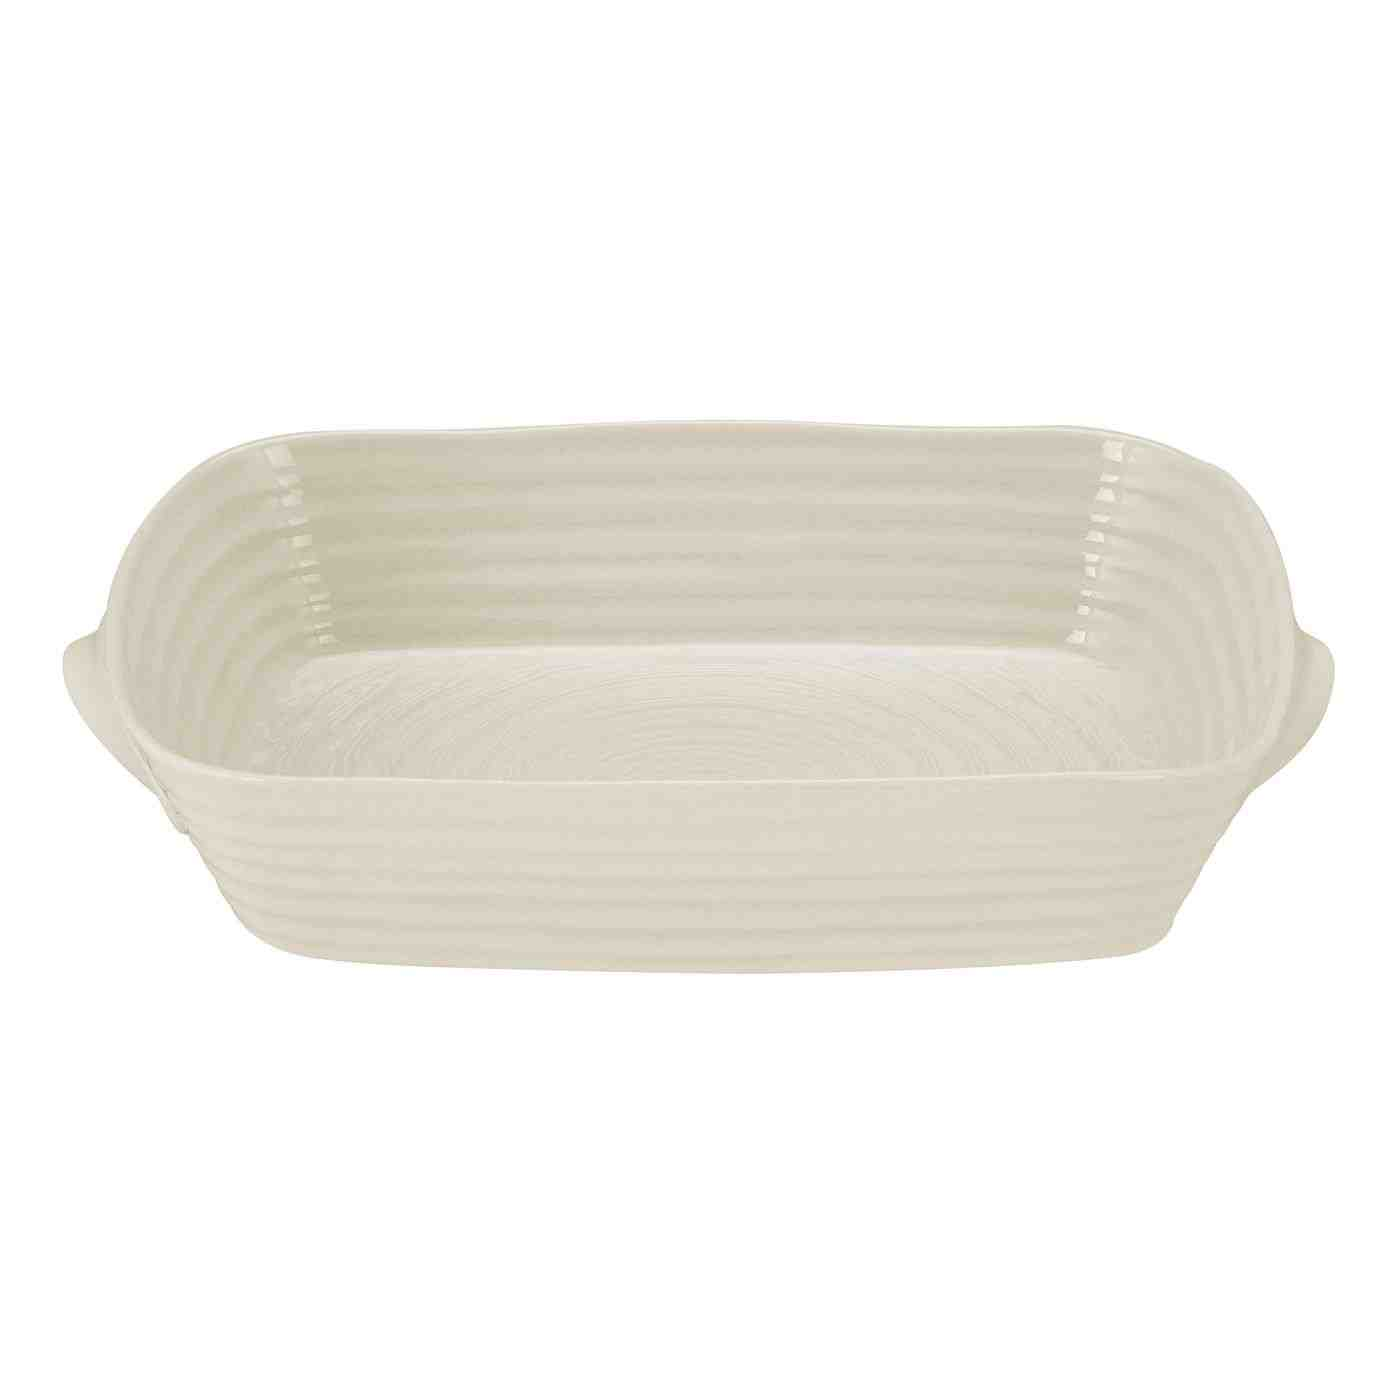 Sophie Conran Pebble Handled Roasting Dish Large